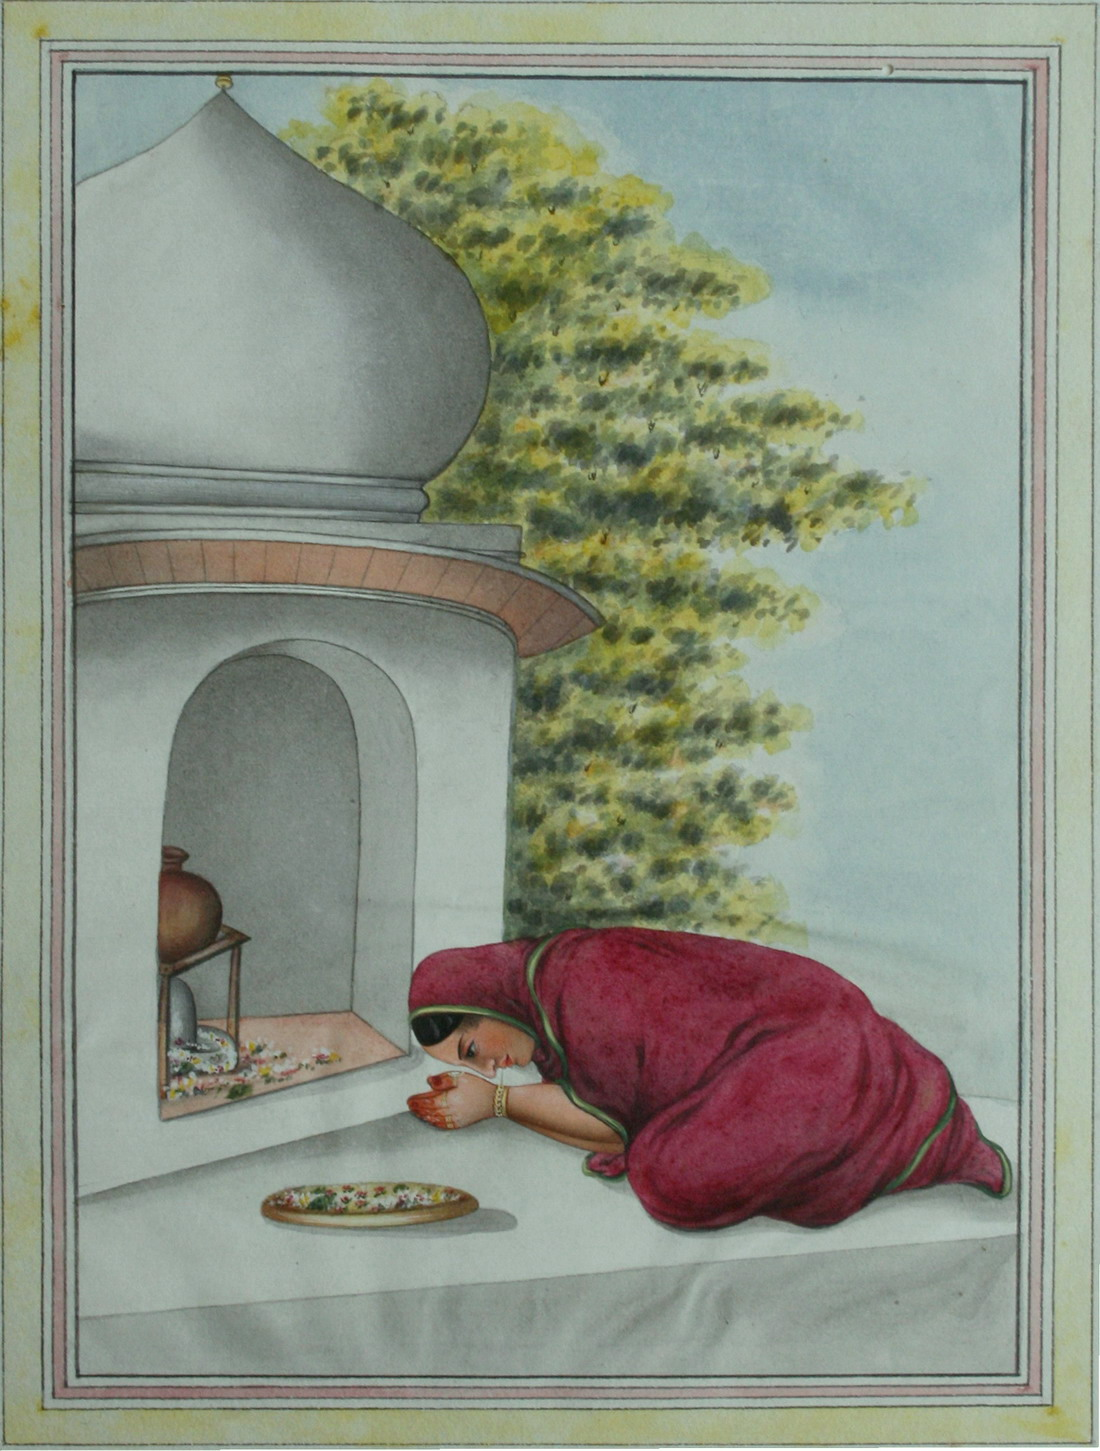 Lady Offering Flowers at a Shiv Shrine - Anglo-Indian at Lucknow c1820